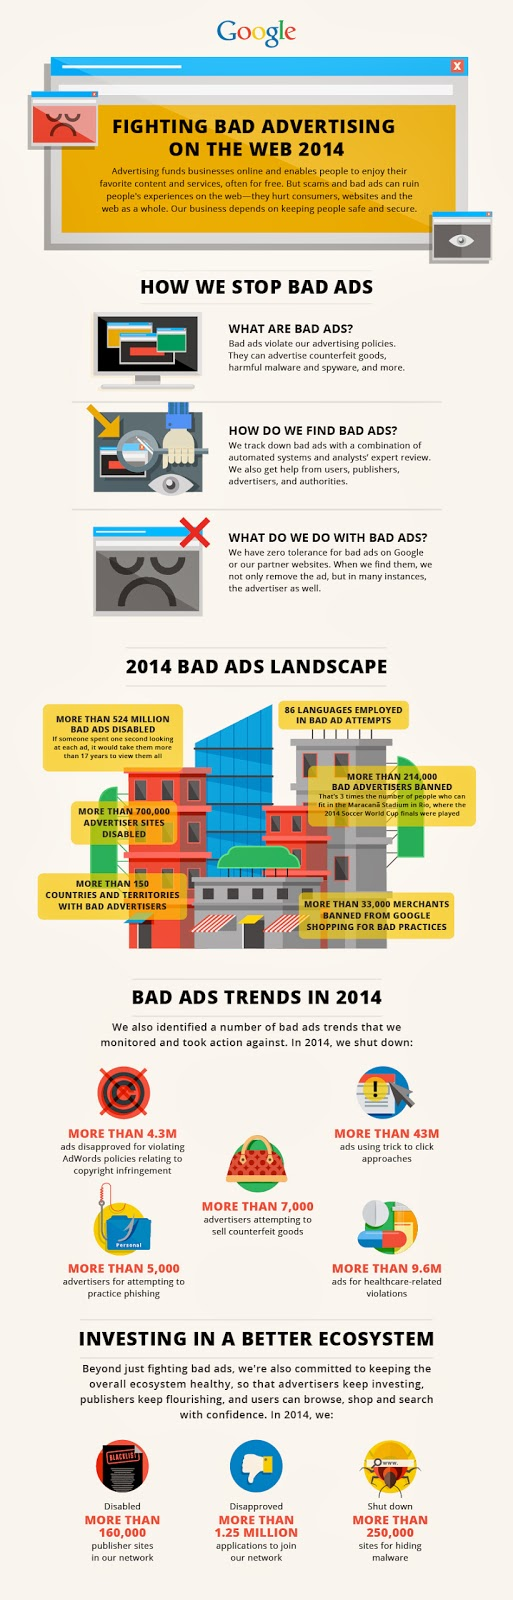 infografika Fighting Bad Advertising Practices on the Web